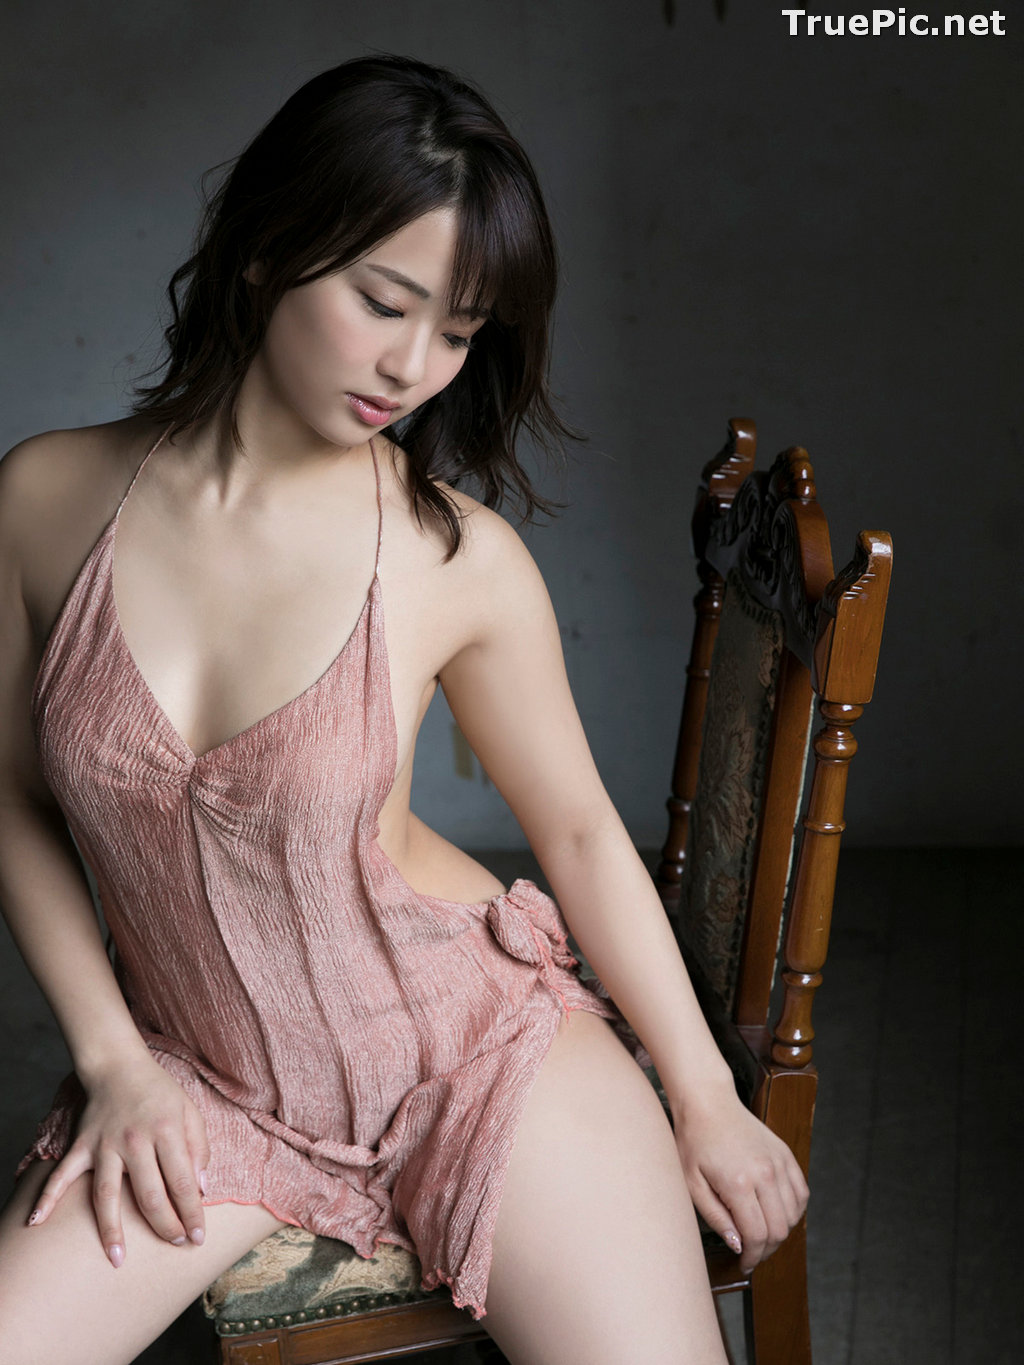 Image Japanese Actress And Model – Natsumi Hirajima (平嶋夏海) - Sexy Picture Collection 2021 - TruePic.net - Picture-6